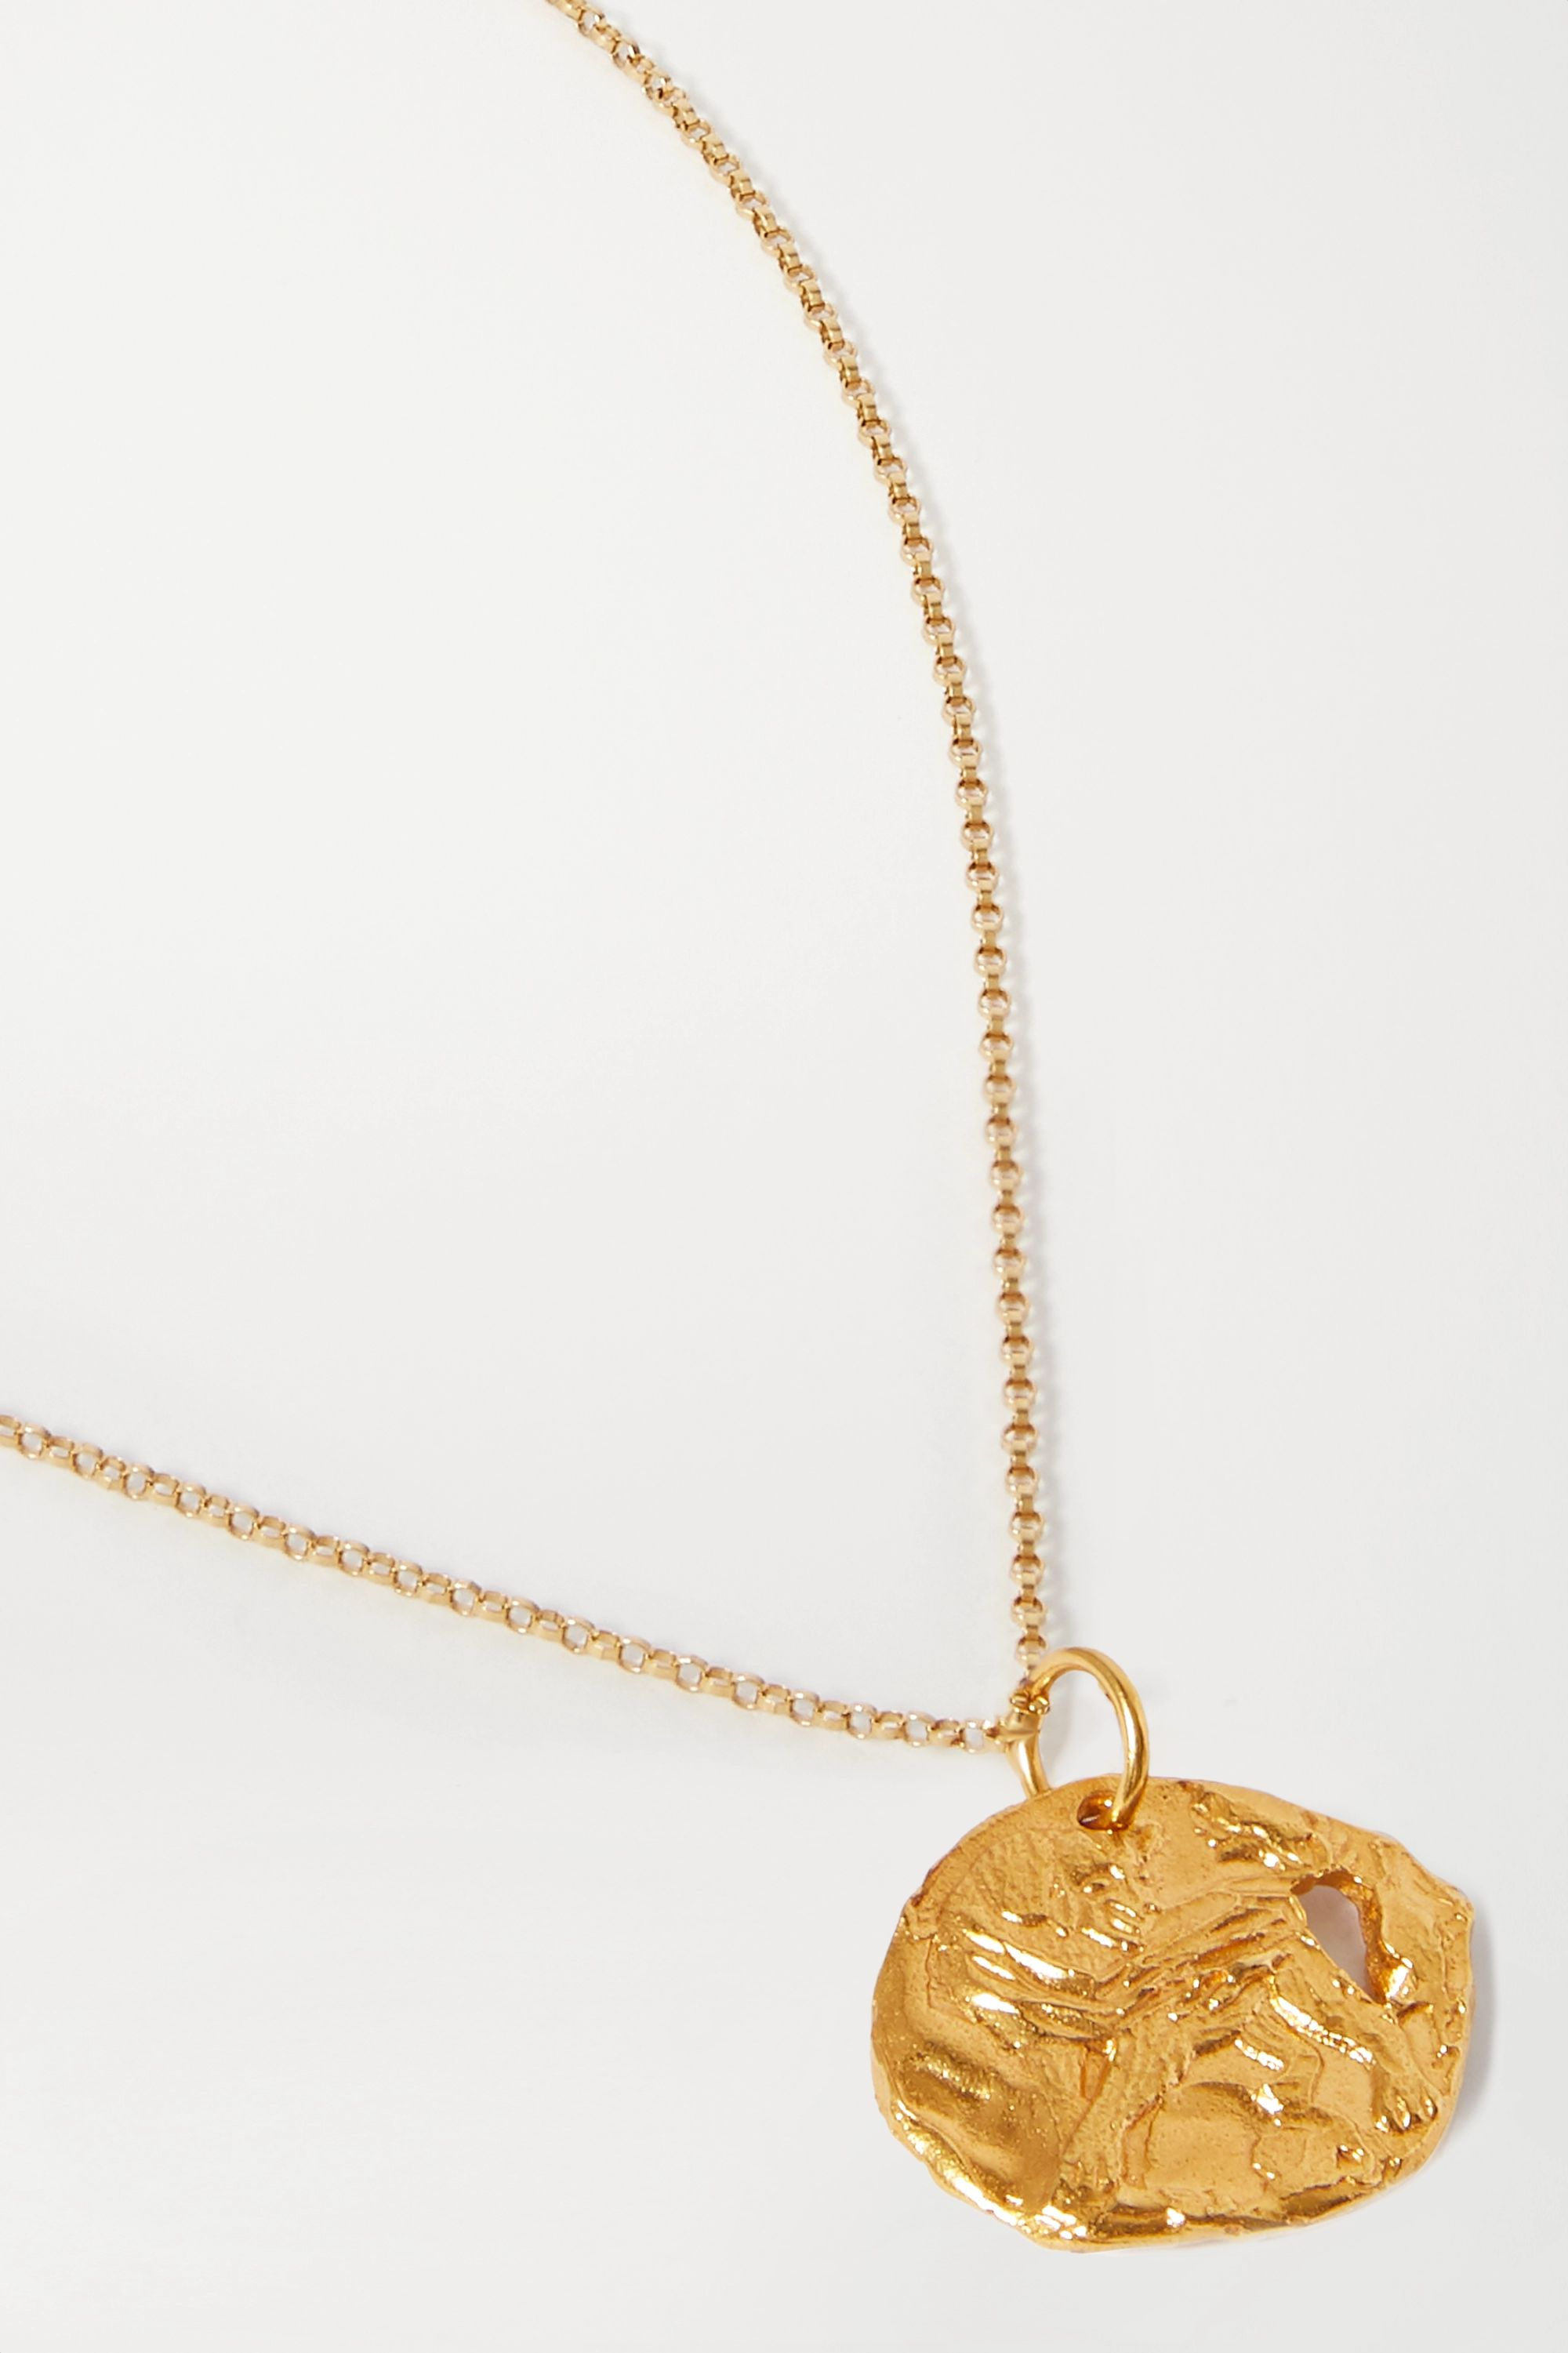 Alighieri Year of the Dog gold-plated necklace